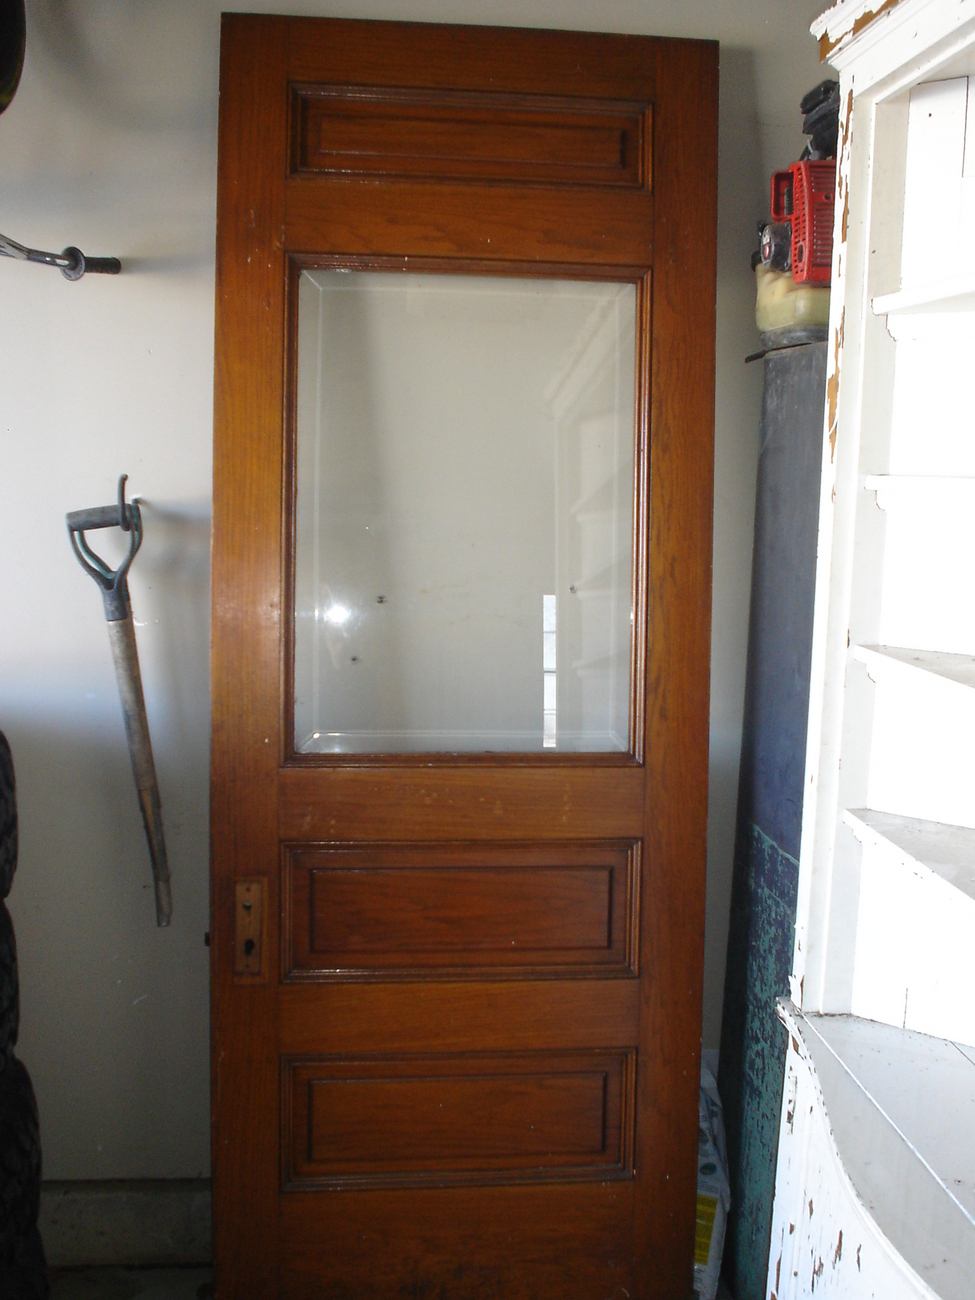 Used Beveled Glass Window For Sale 126 Ads In Us